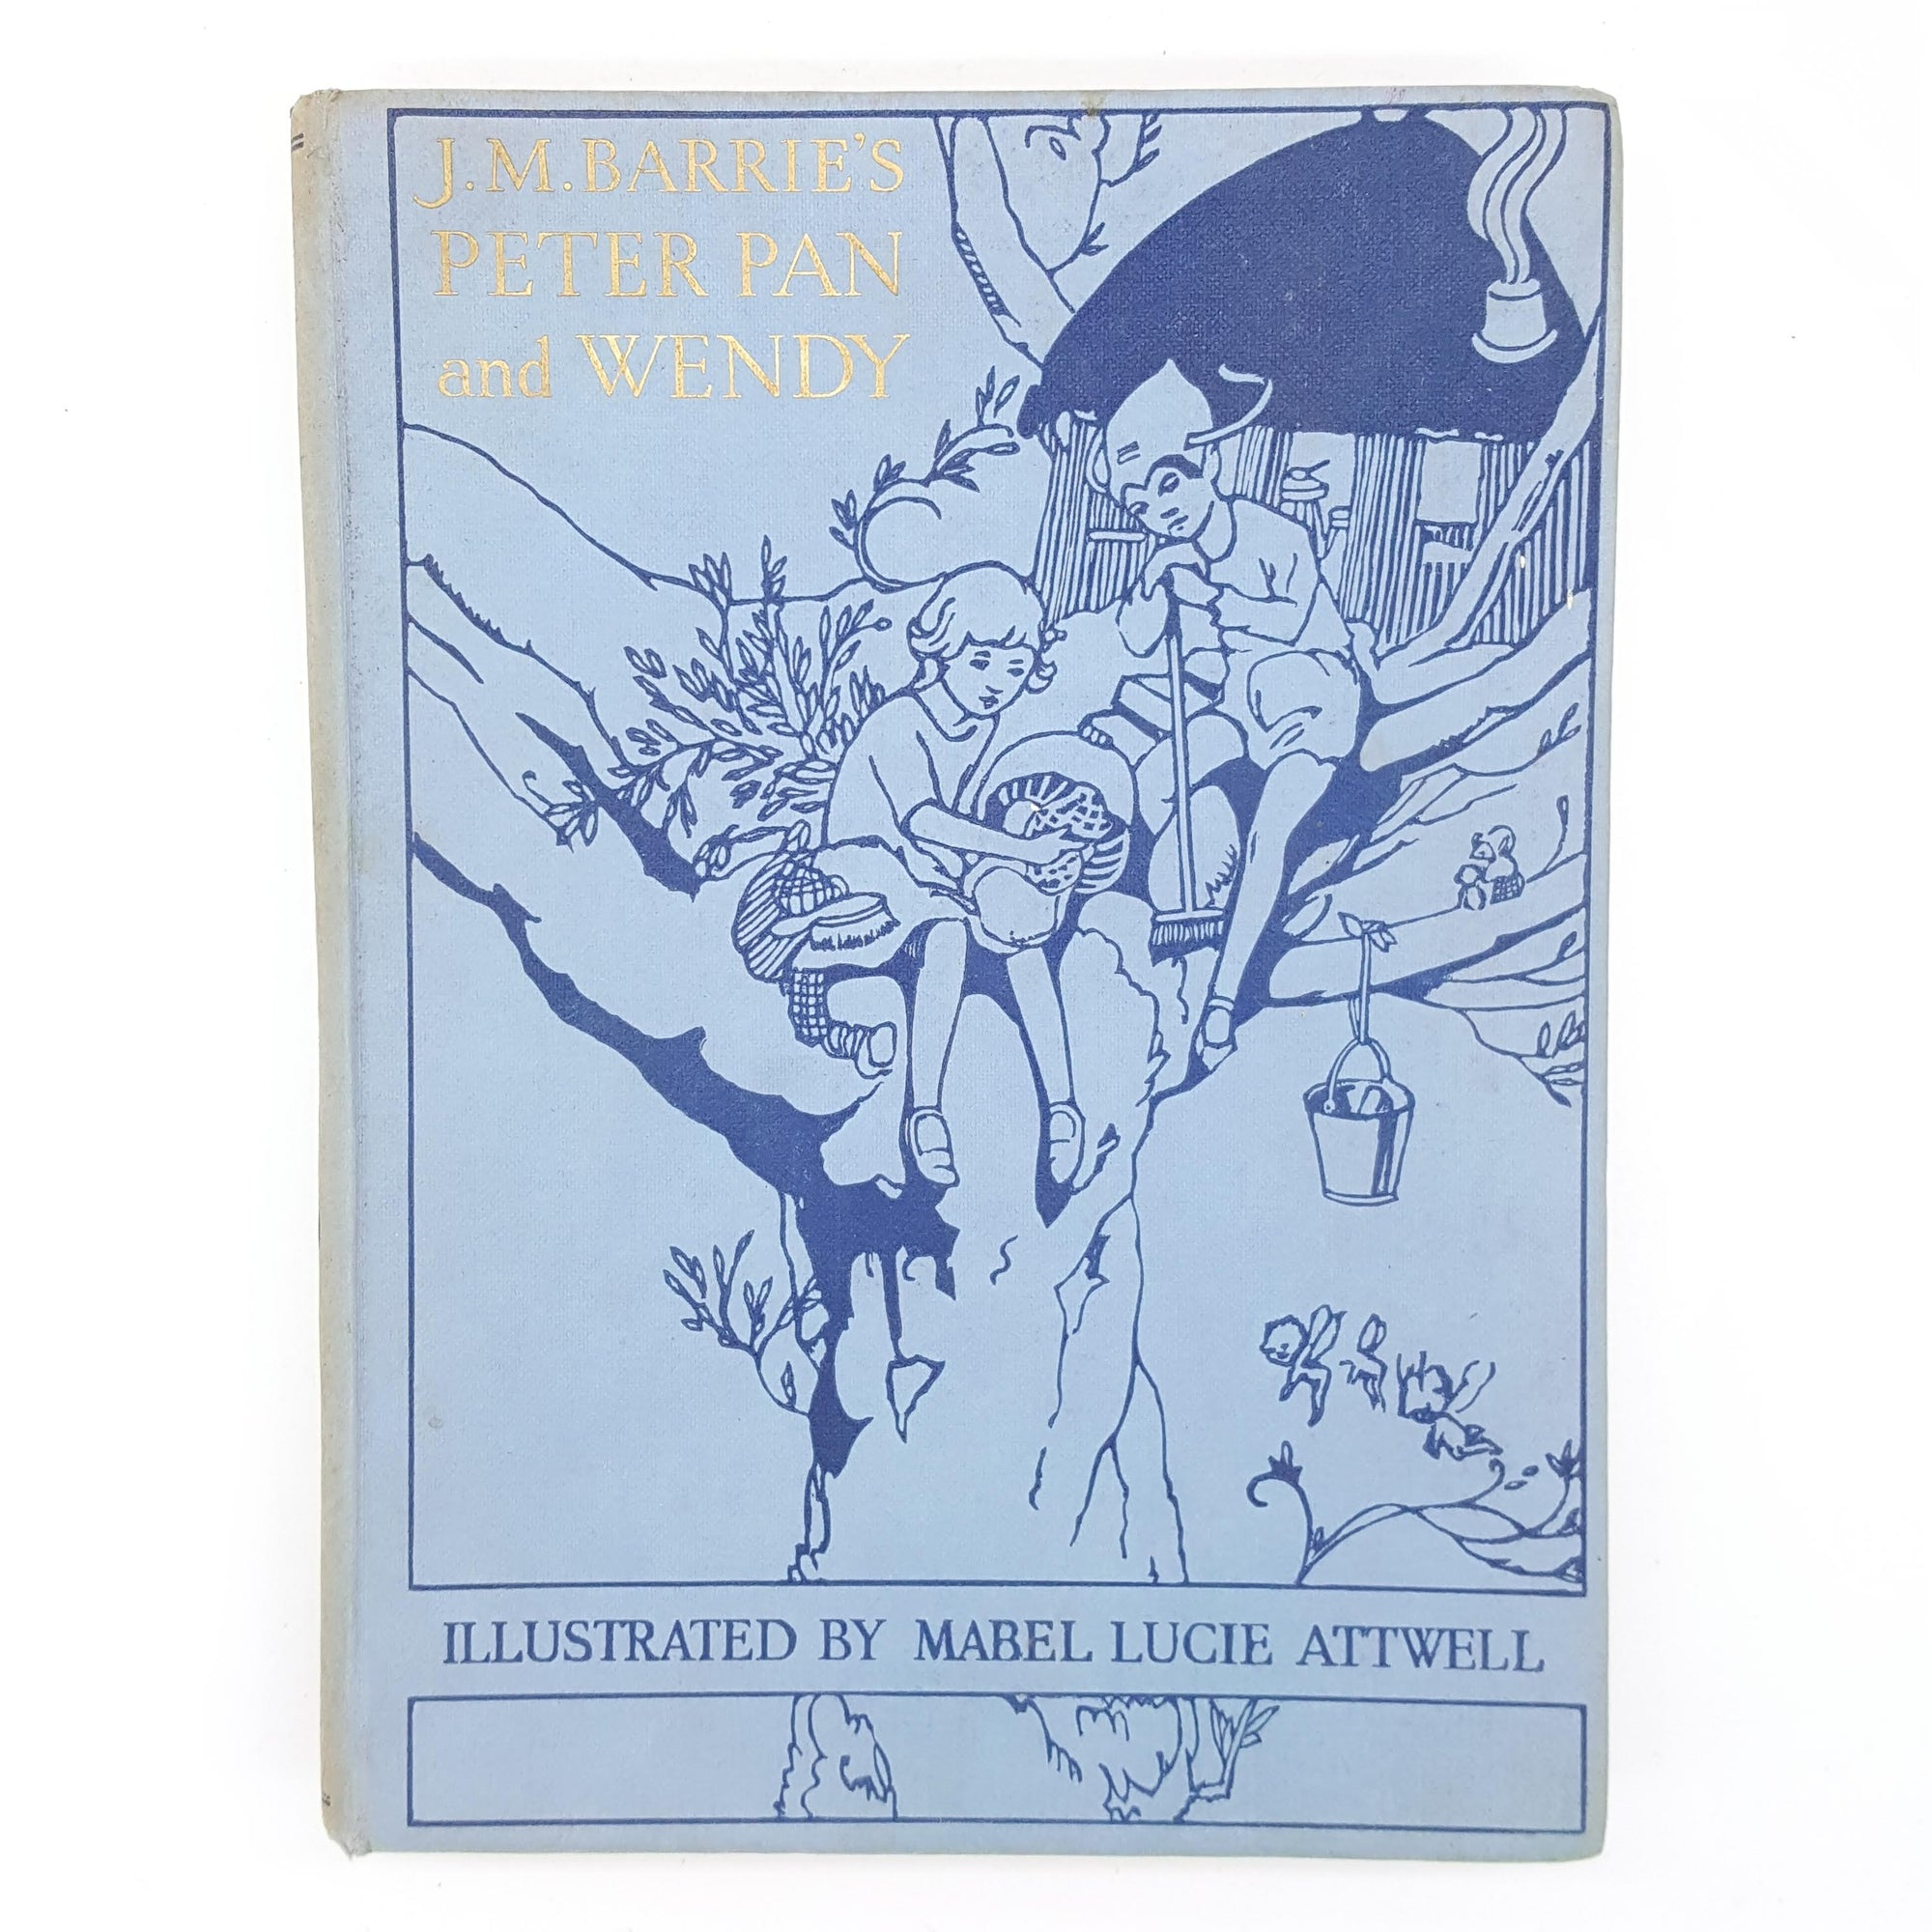 Peter Pan and Wendy retold by May Byron 1955 Country House Library